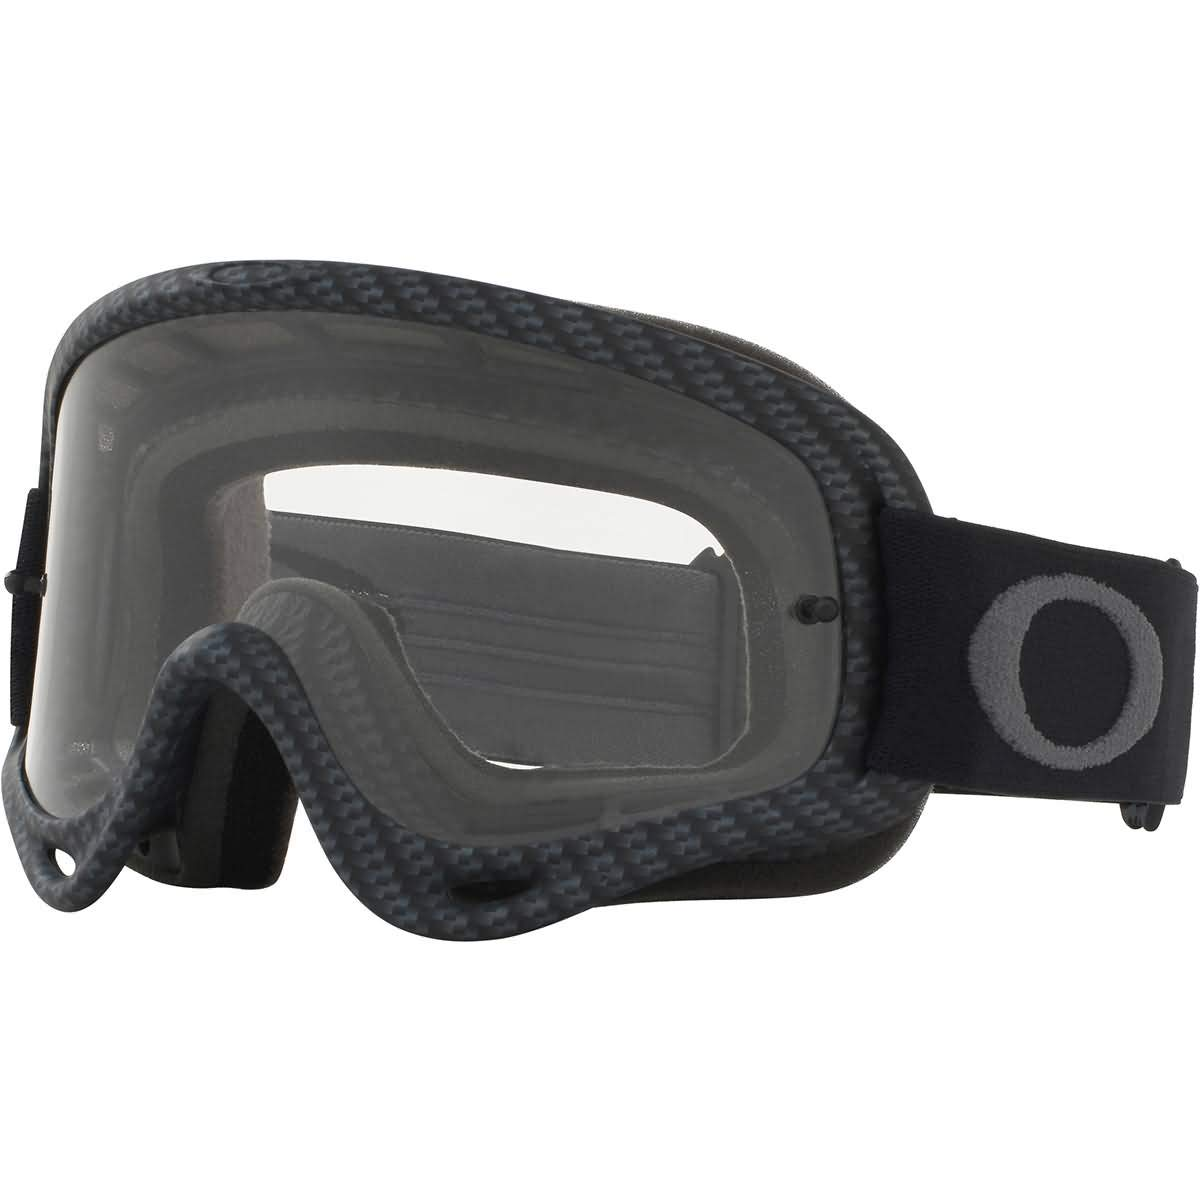 Oakley O Frame MX Adult Off-Road Motorcycle Goggles - Matte Carbon Fiber/Clear by Oakley